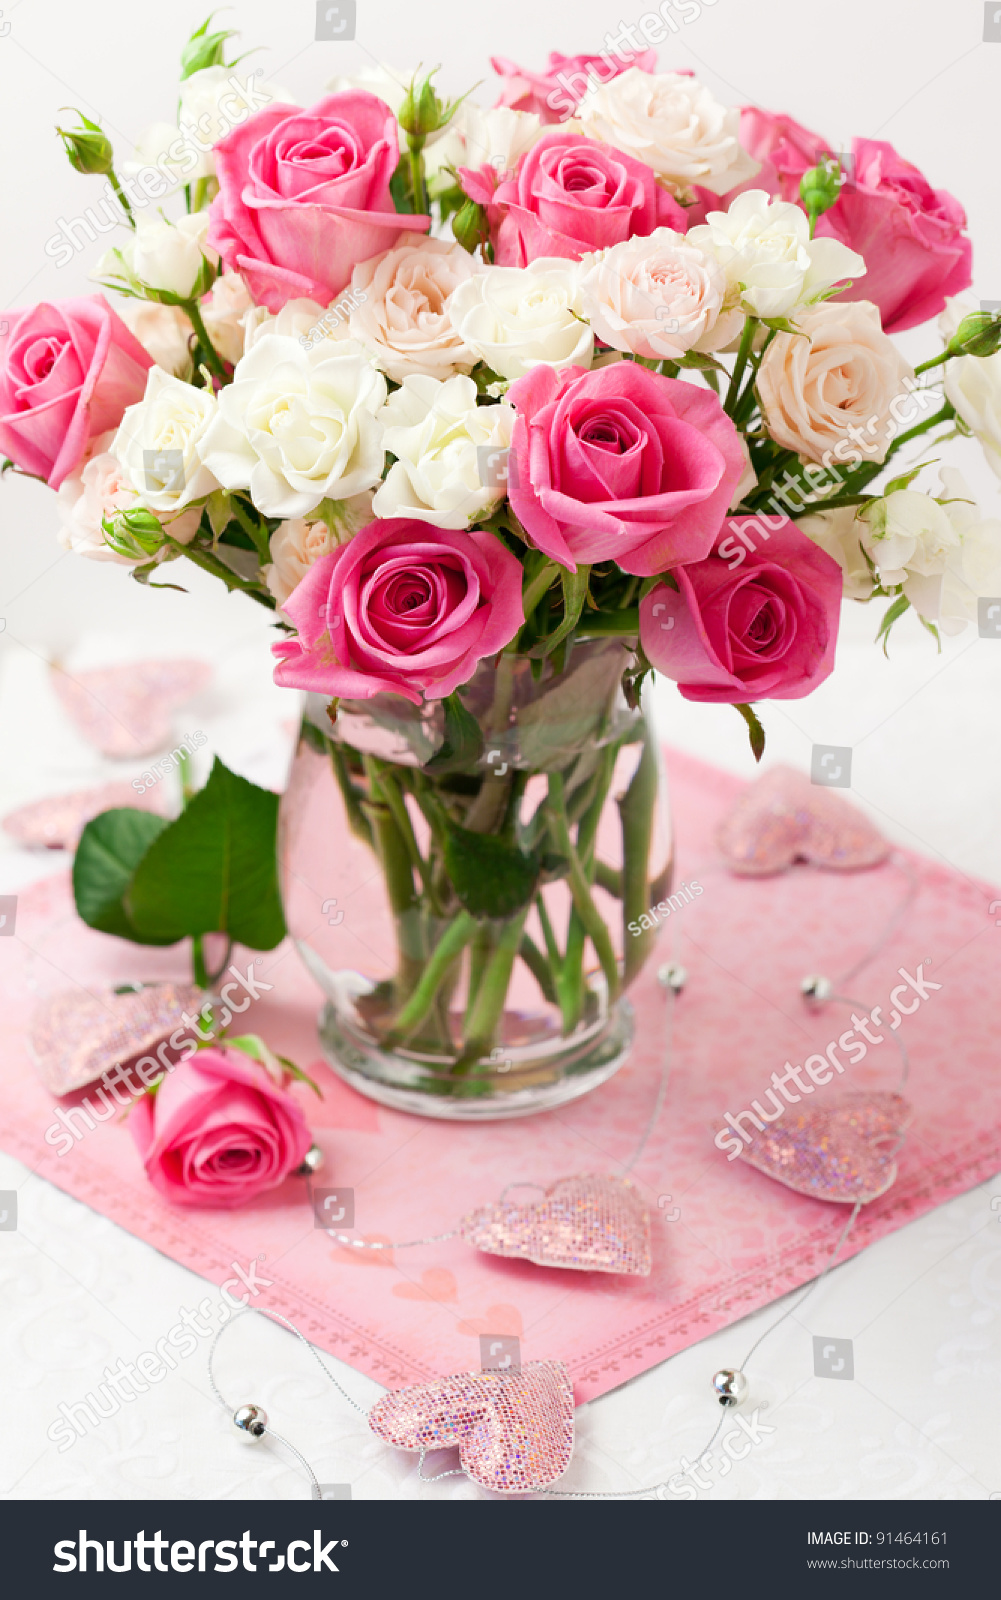 Festive Bouquet Of Pink And White Roses In Vase Stock ...